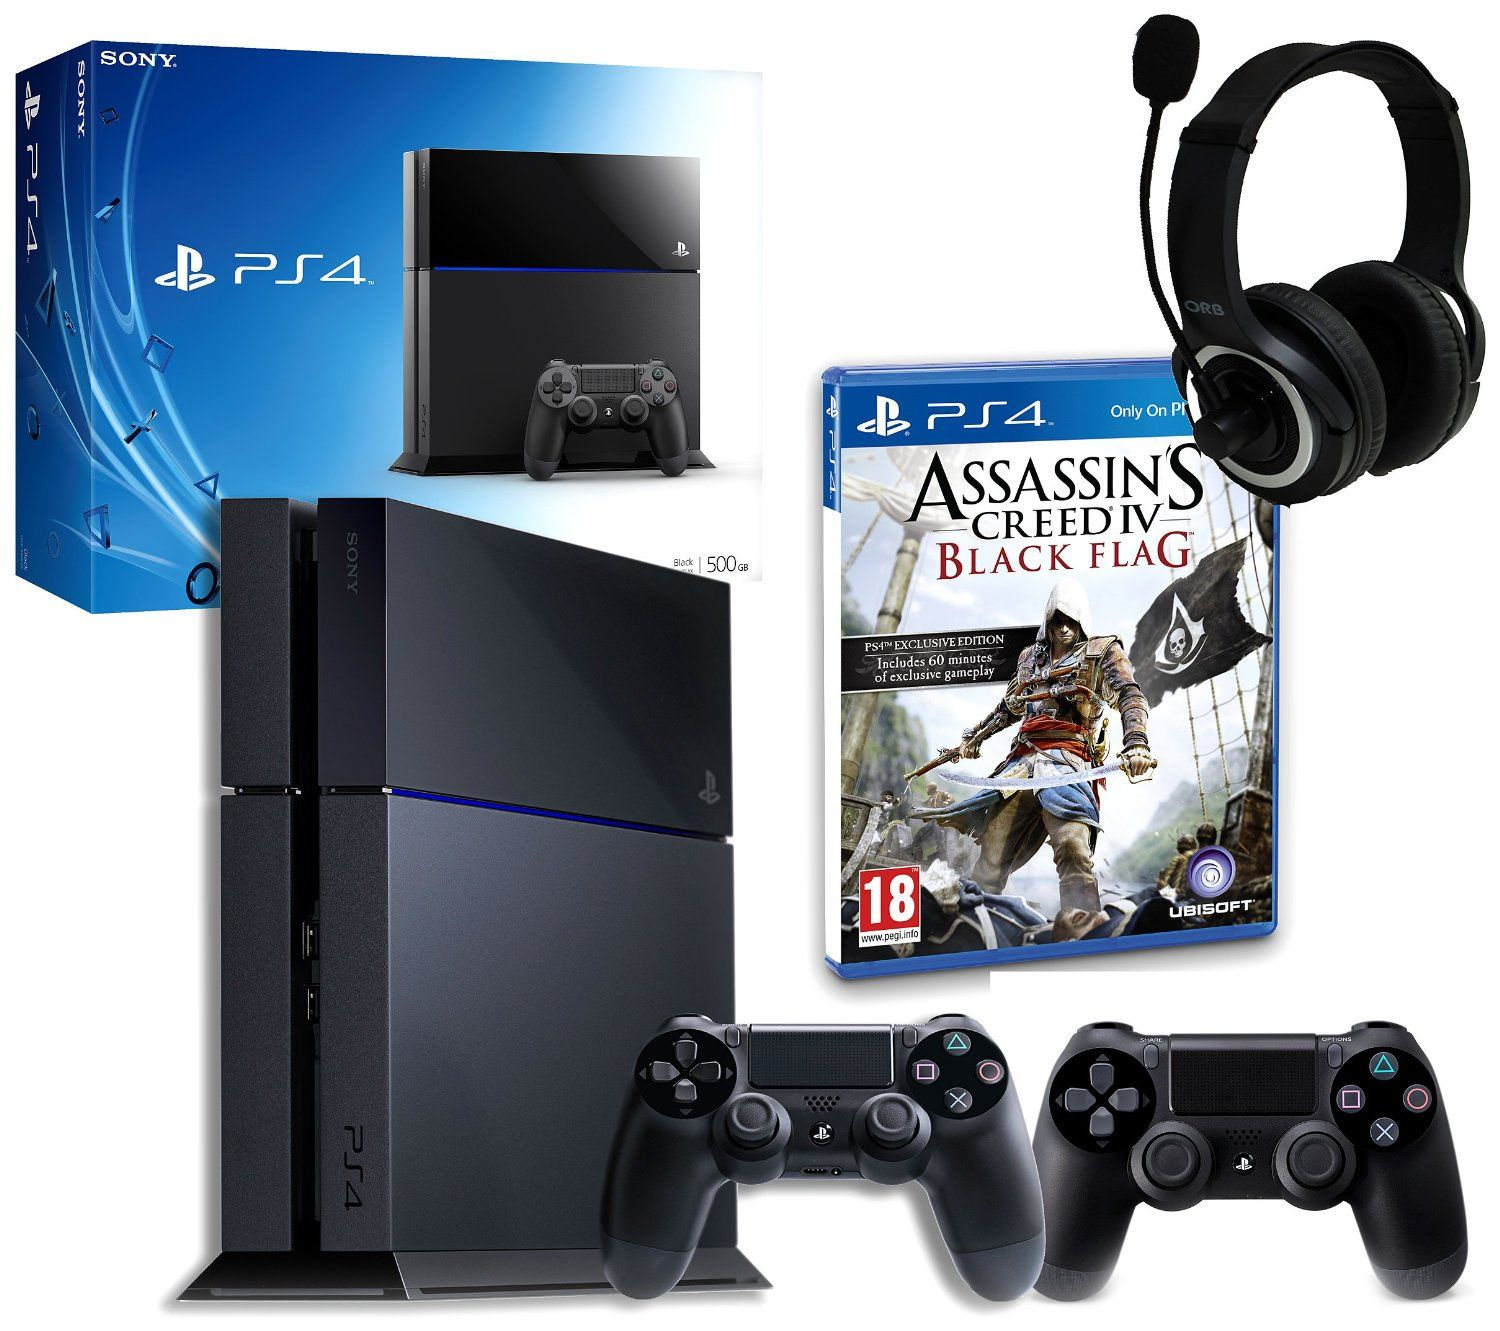 Sony Playstation 4 With Assassins Creed Iv Gp3 Headset